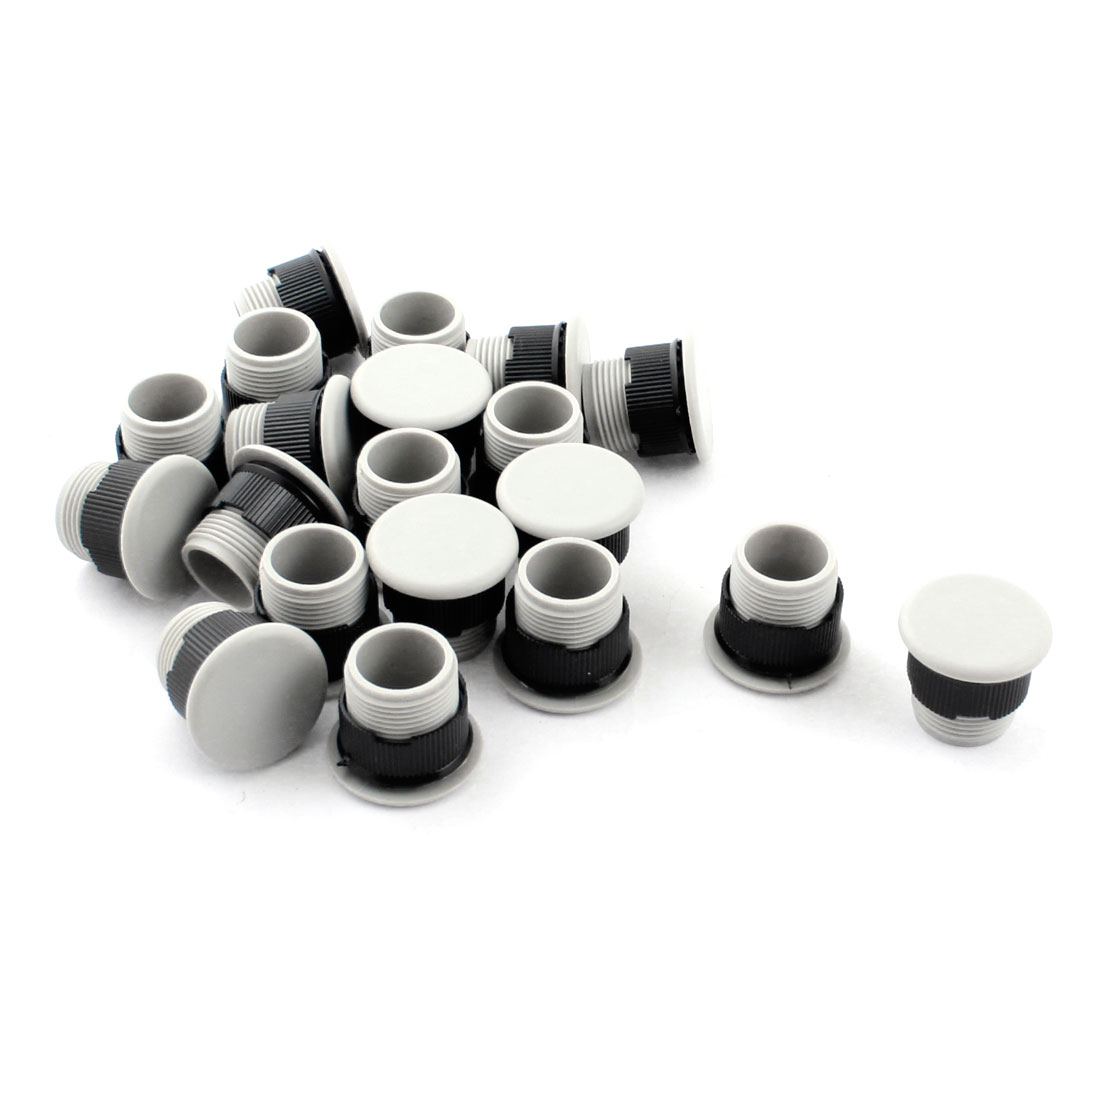 20Pcs 16mm Dia Mounting Hole Pilot Lamp Push Button Switch Plug Gray Black